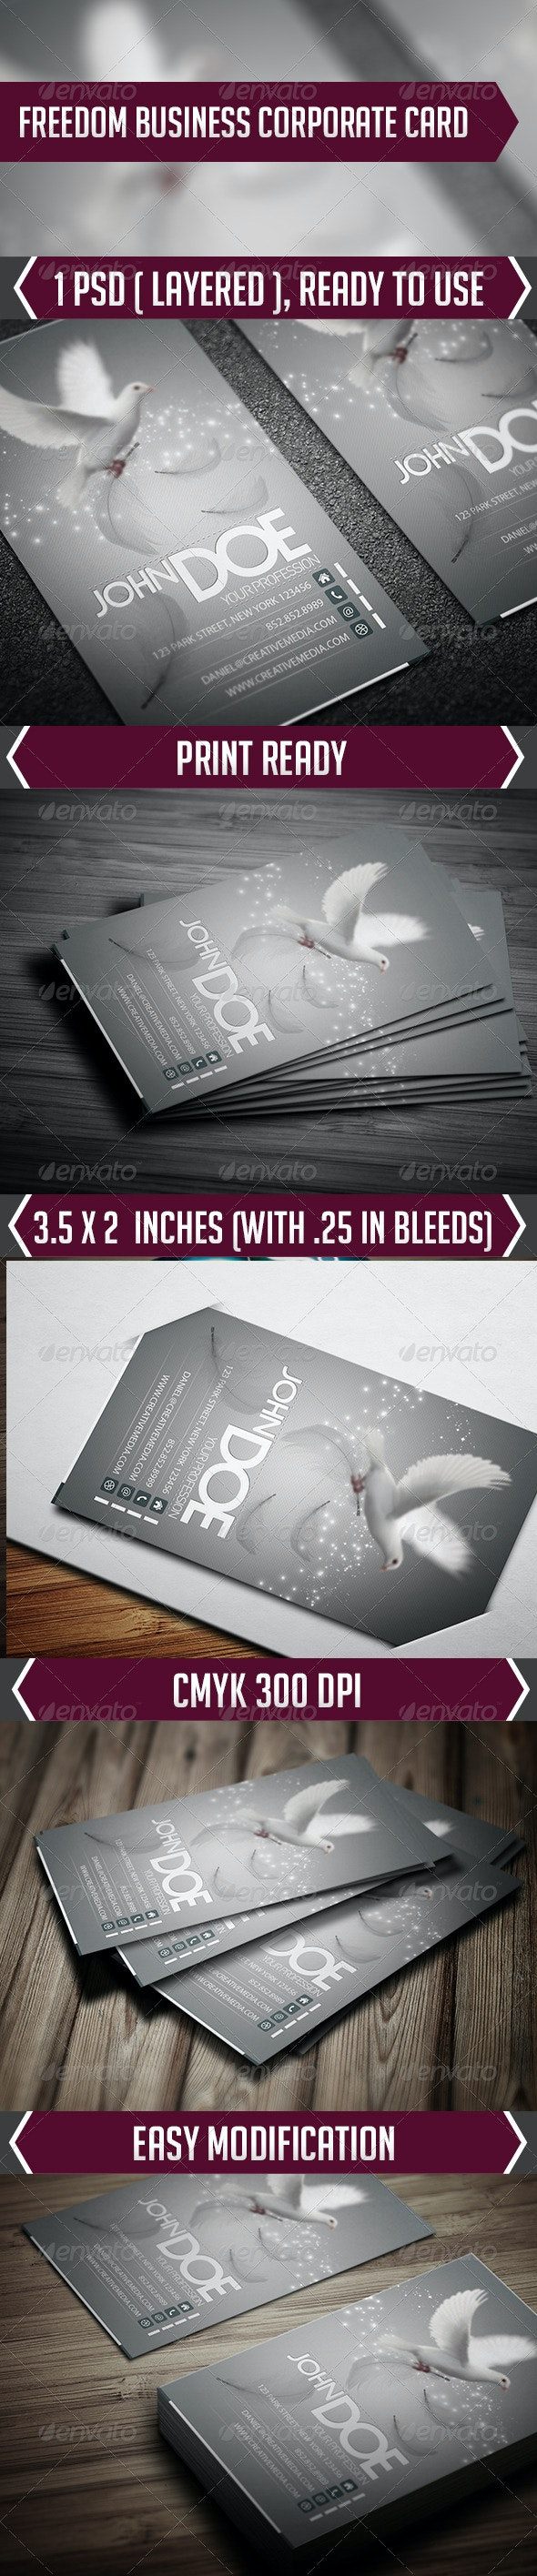 Freedom Business Corporate Card - Creative Business Cards